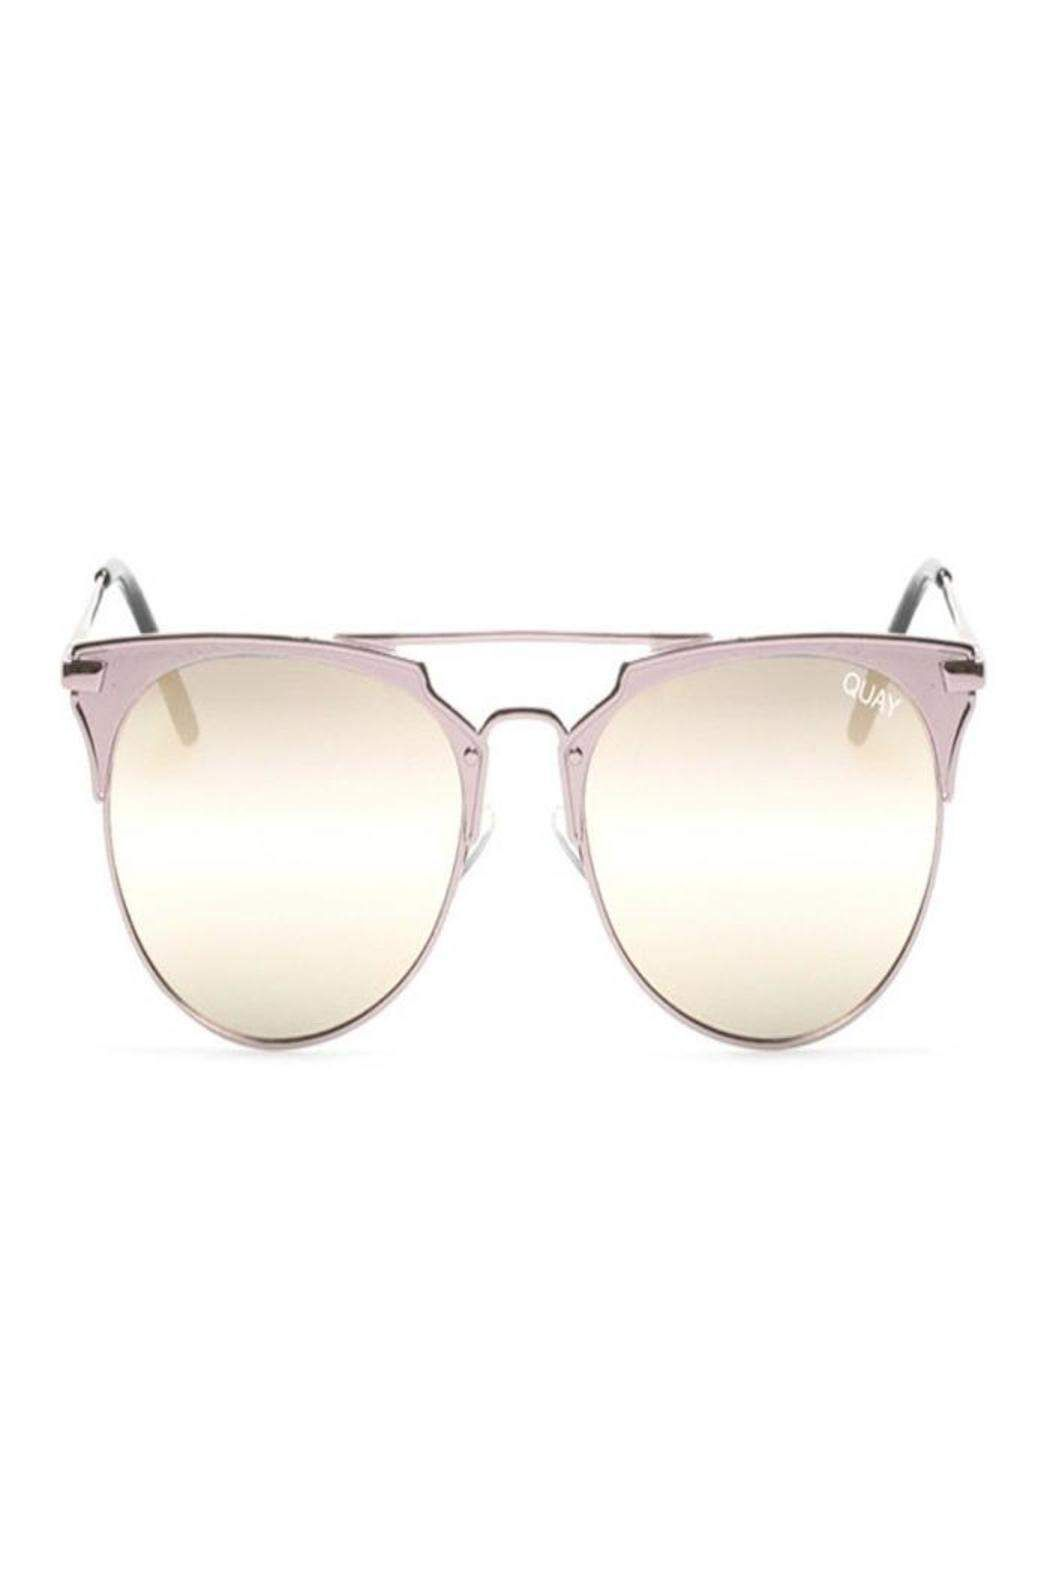 44b978cd5d Limited edition Quay Australia sunglasses. Mirrored rose gold lenses with  stainless steel hinges. Nickel free metal frame. UV protection